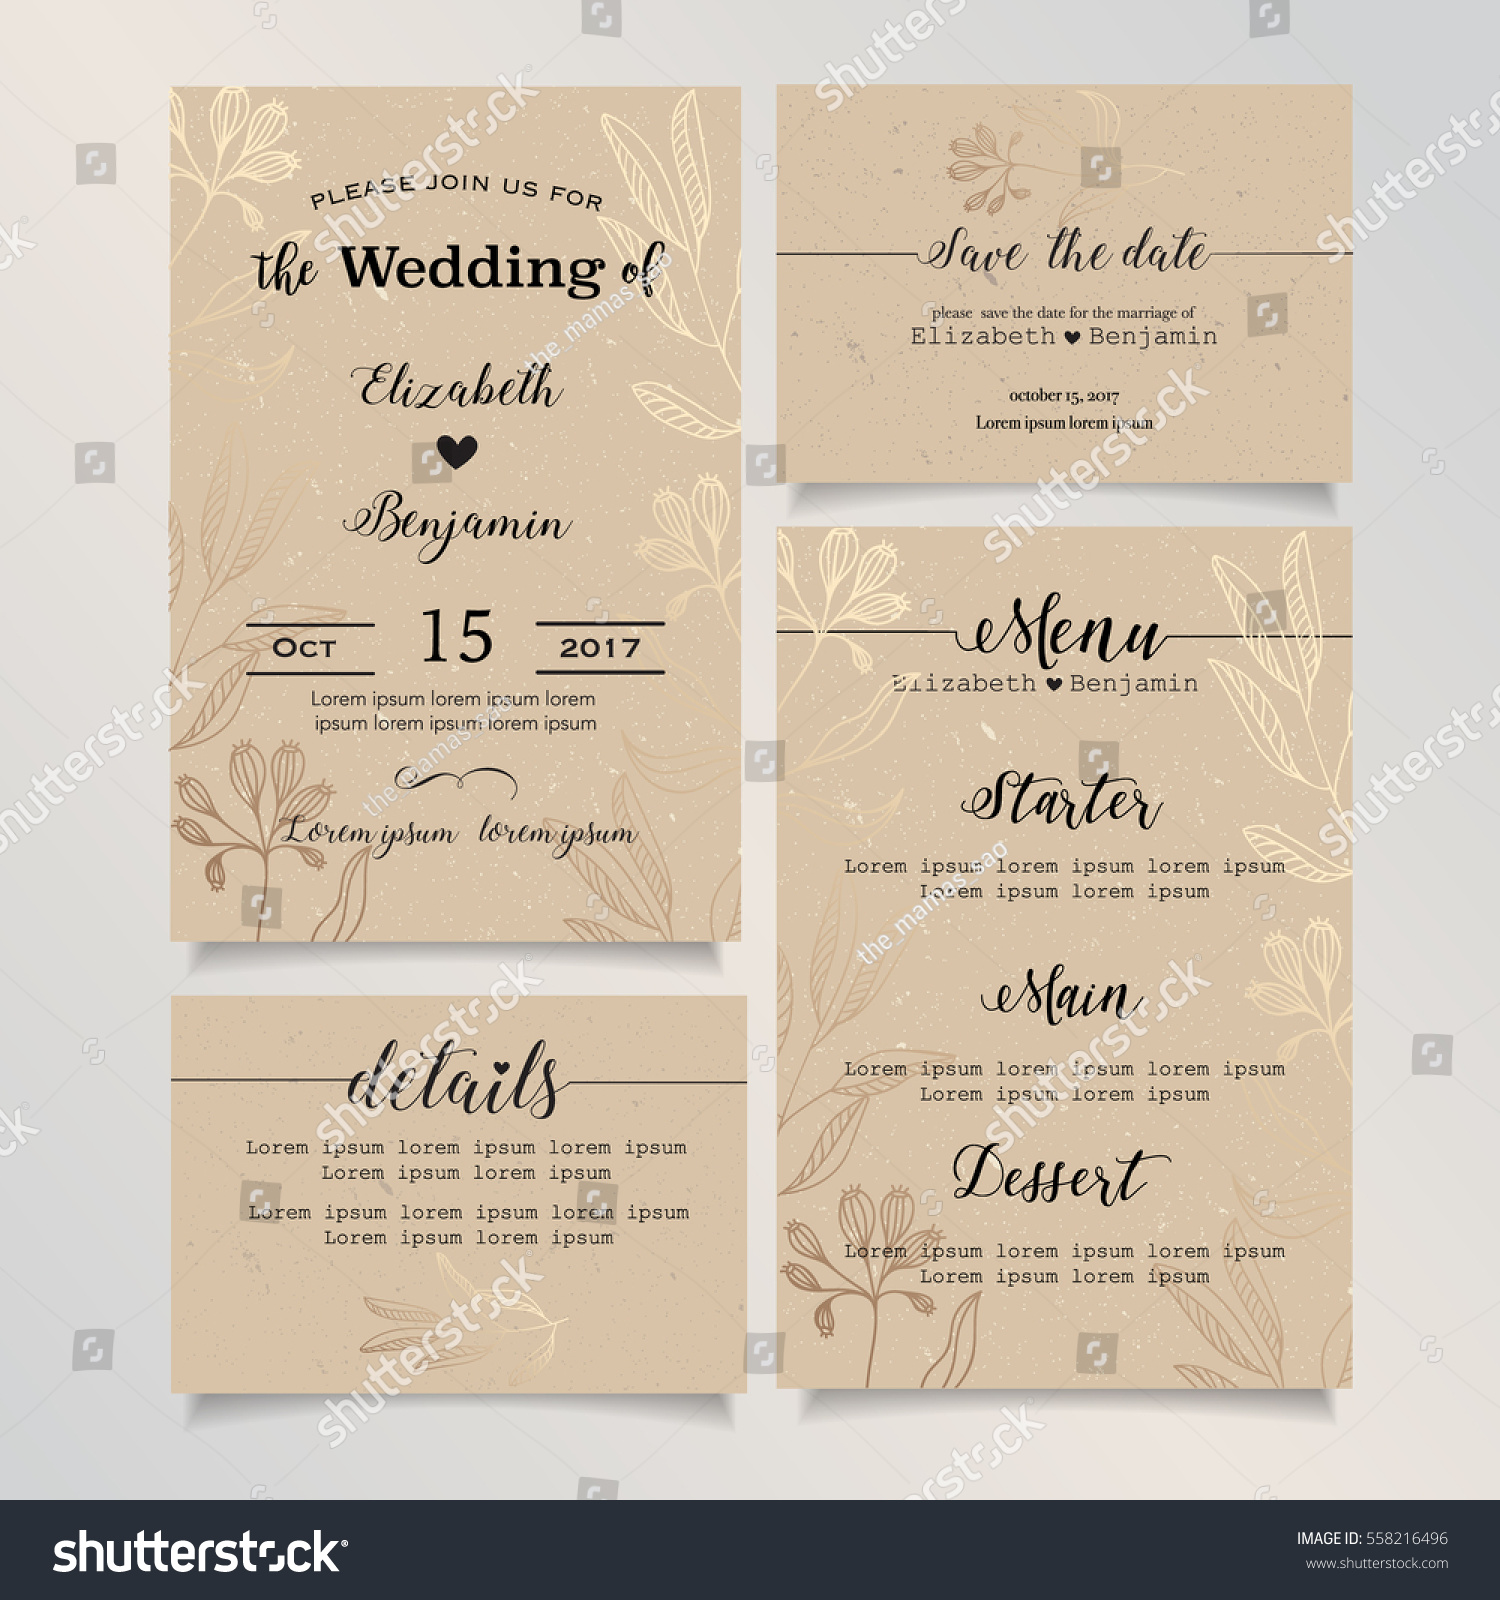 wedding invitation card details card save the date card menu card wedding - Wedding Invitation Details Card